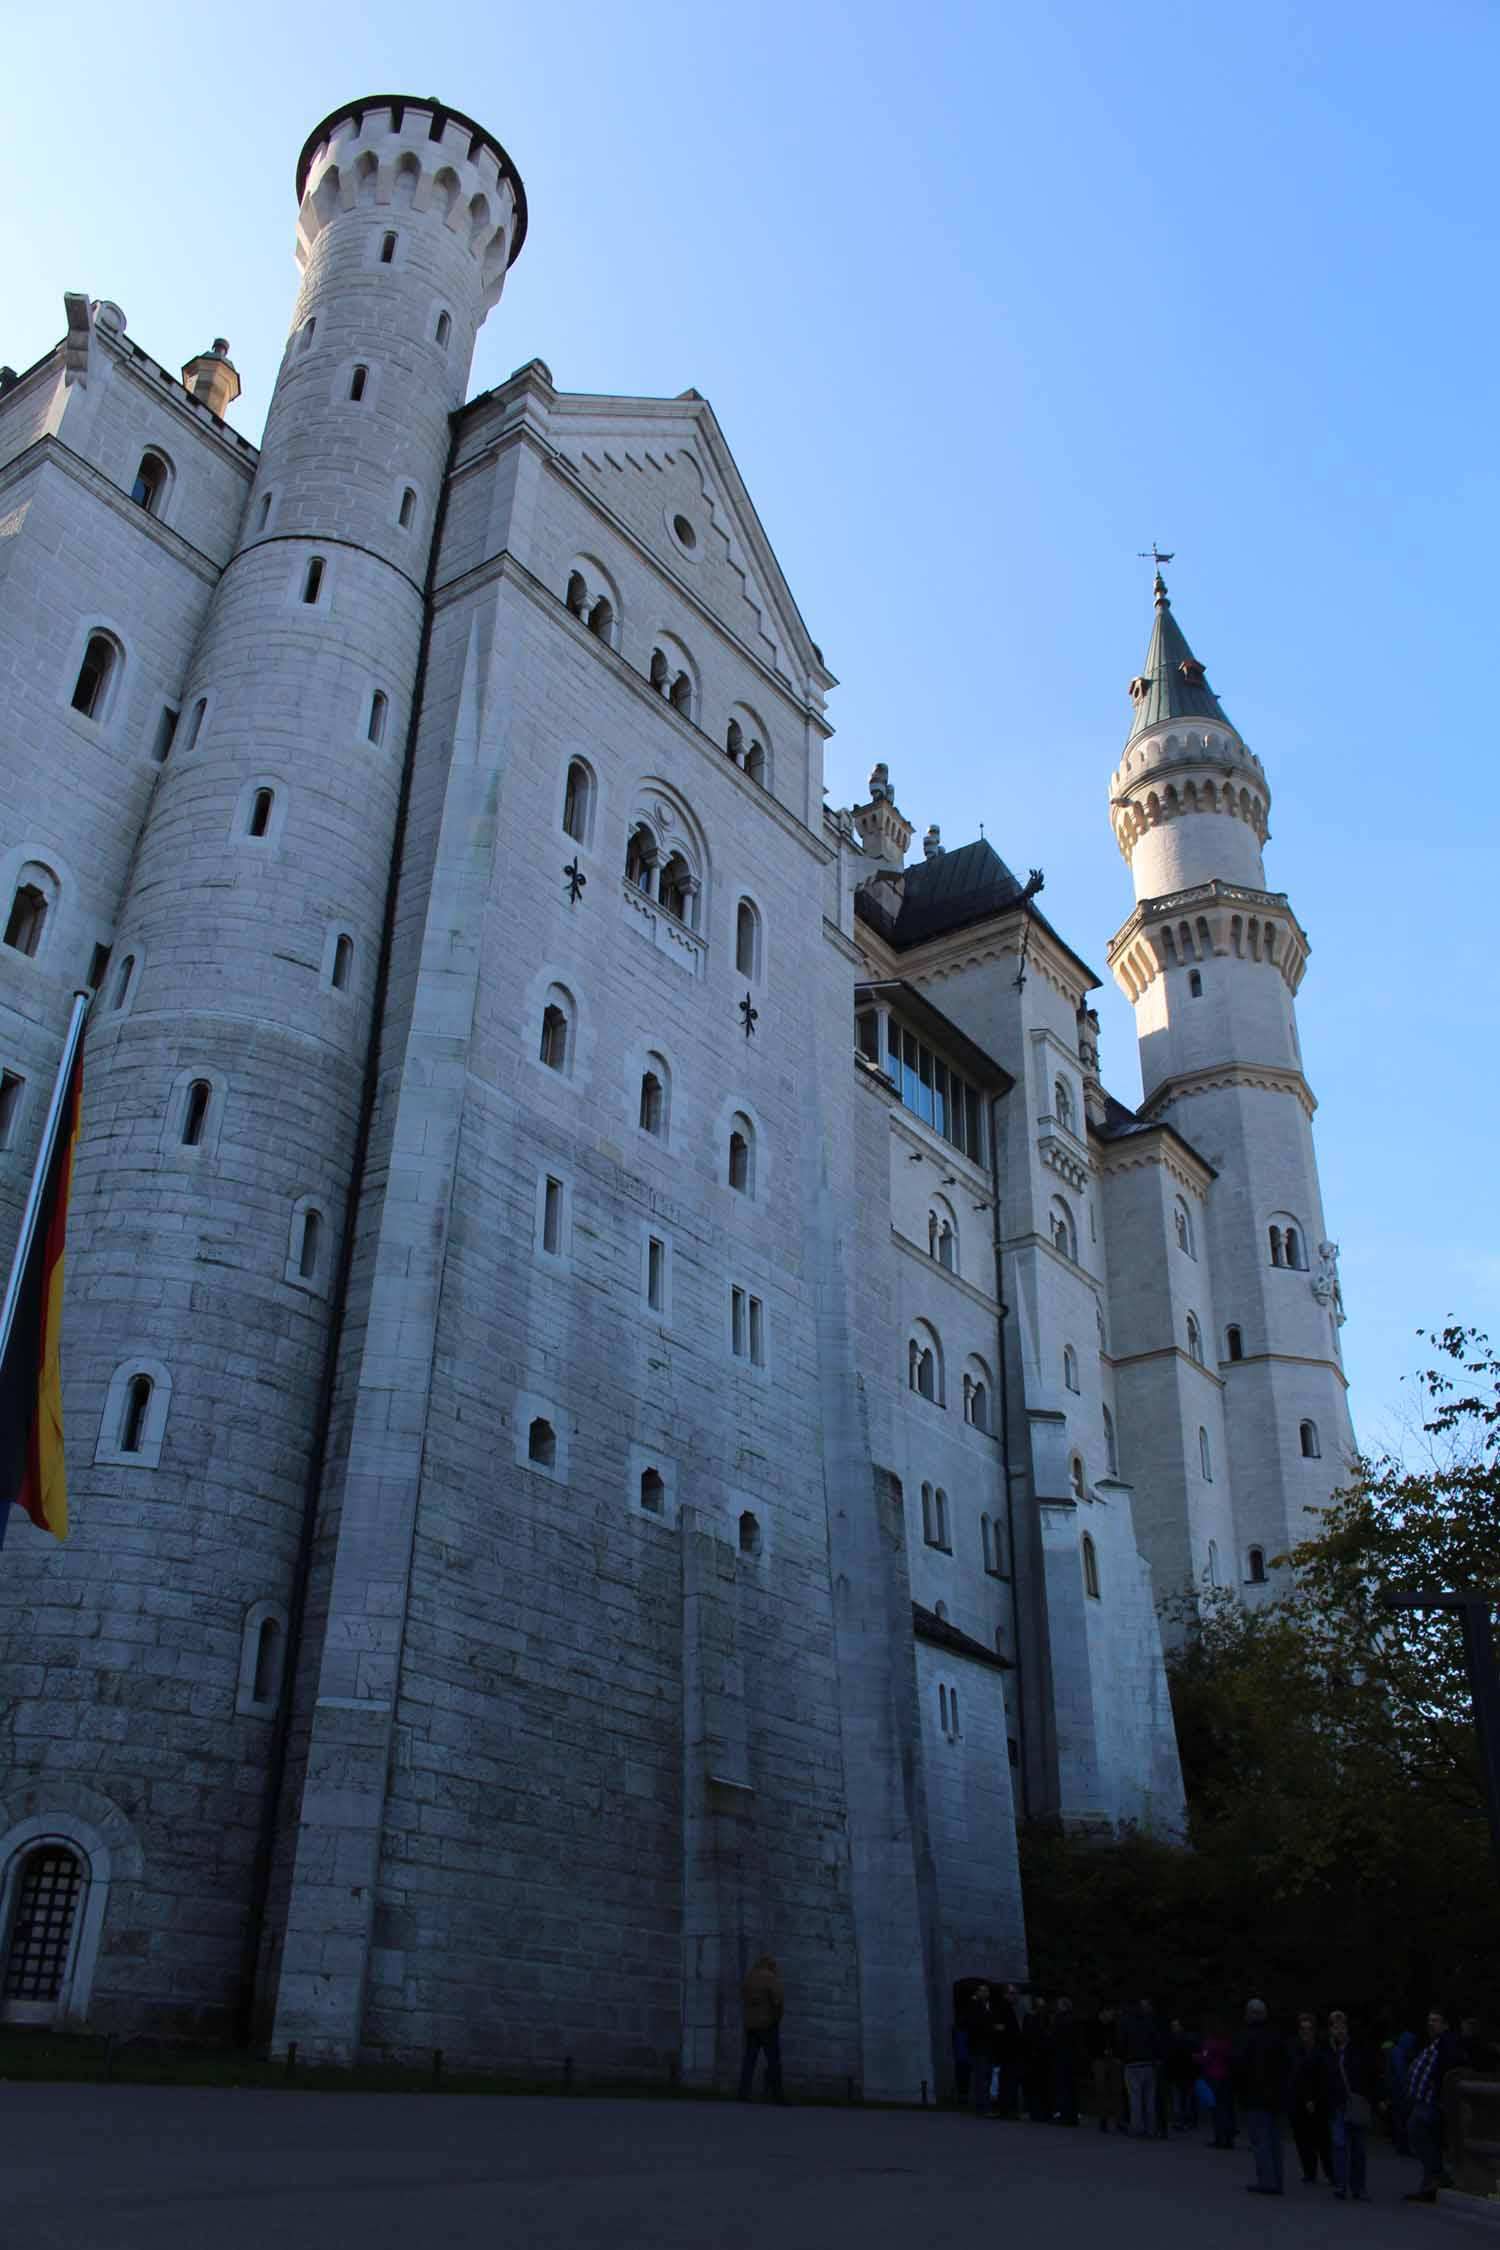 The fortress of Neuschwanstein,